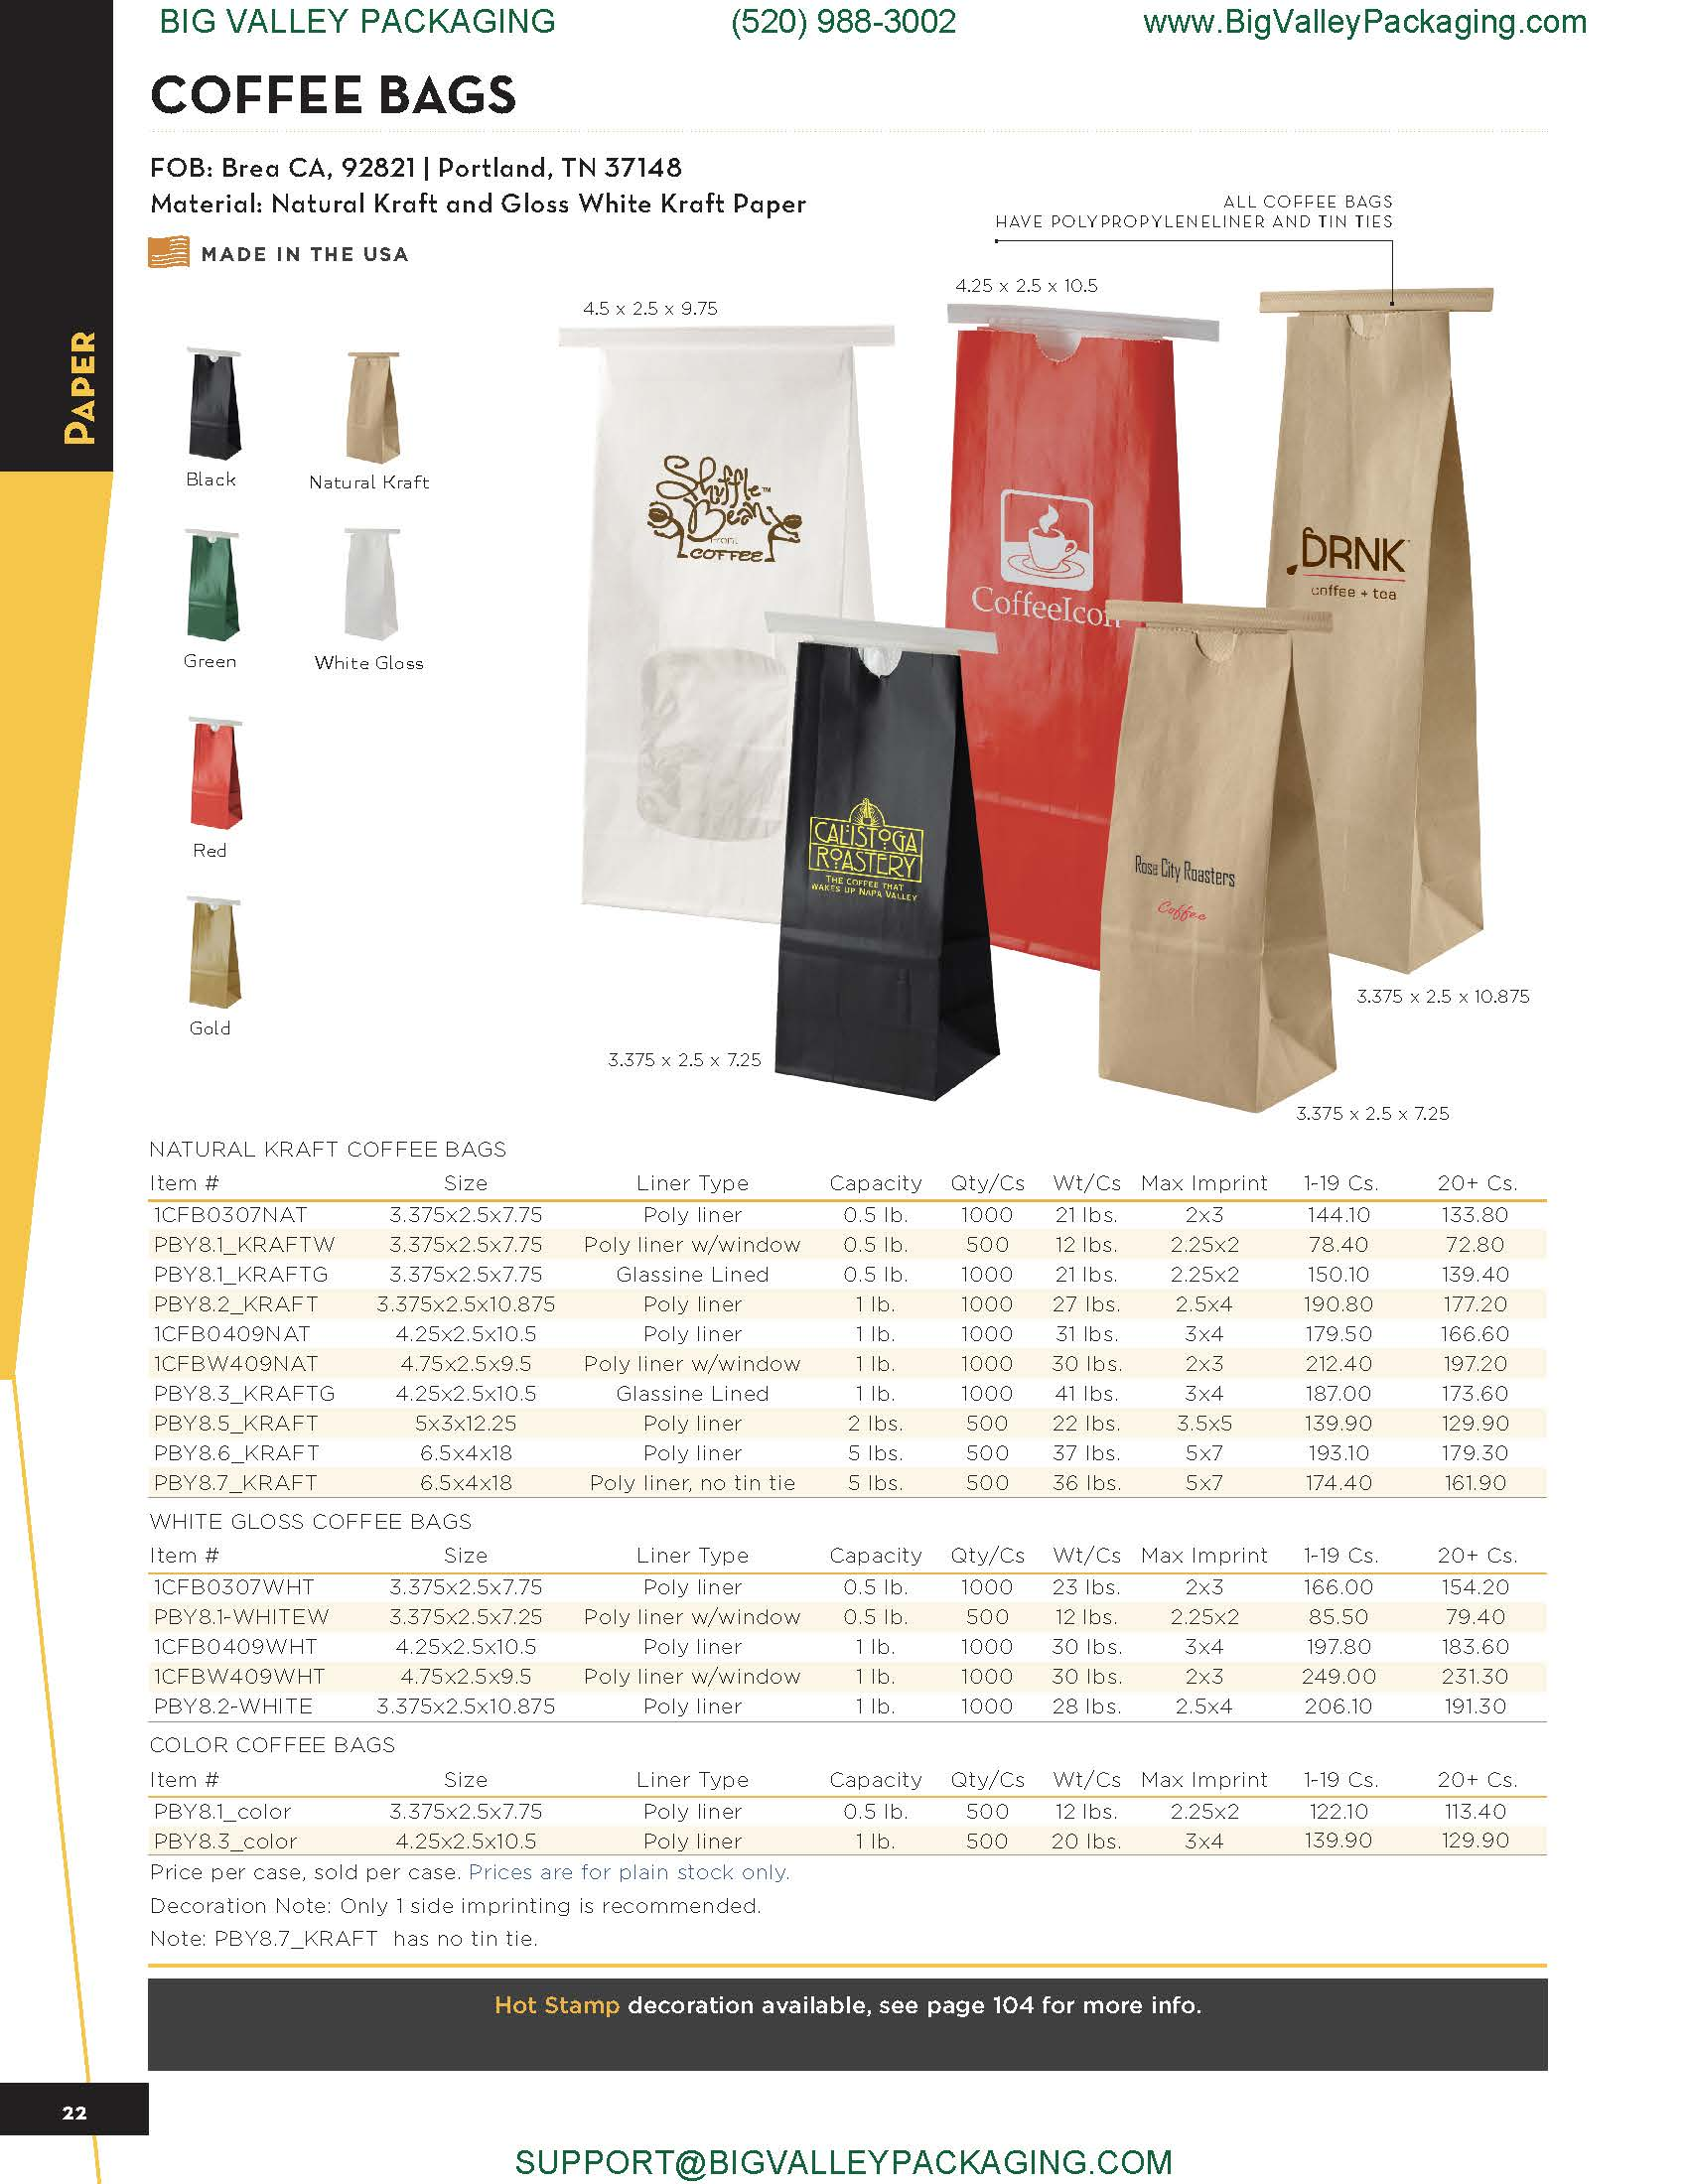 PRINTED PAPER COFFEE BAGS WITH WINDOW